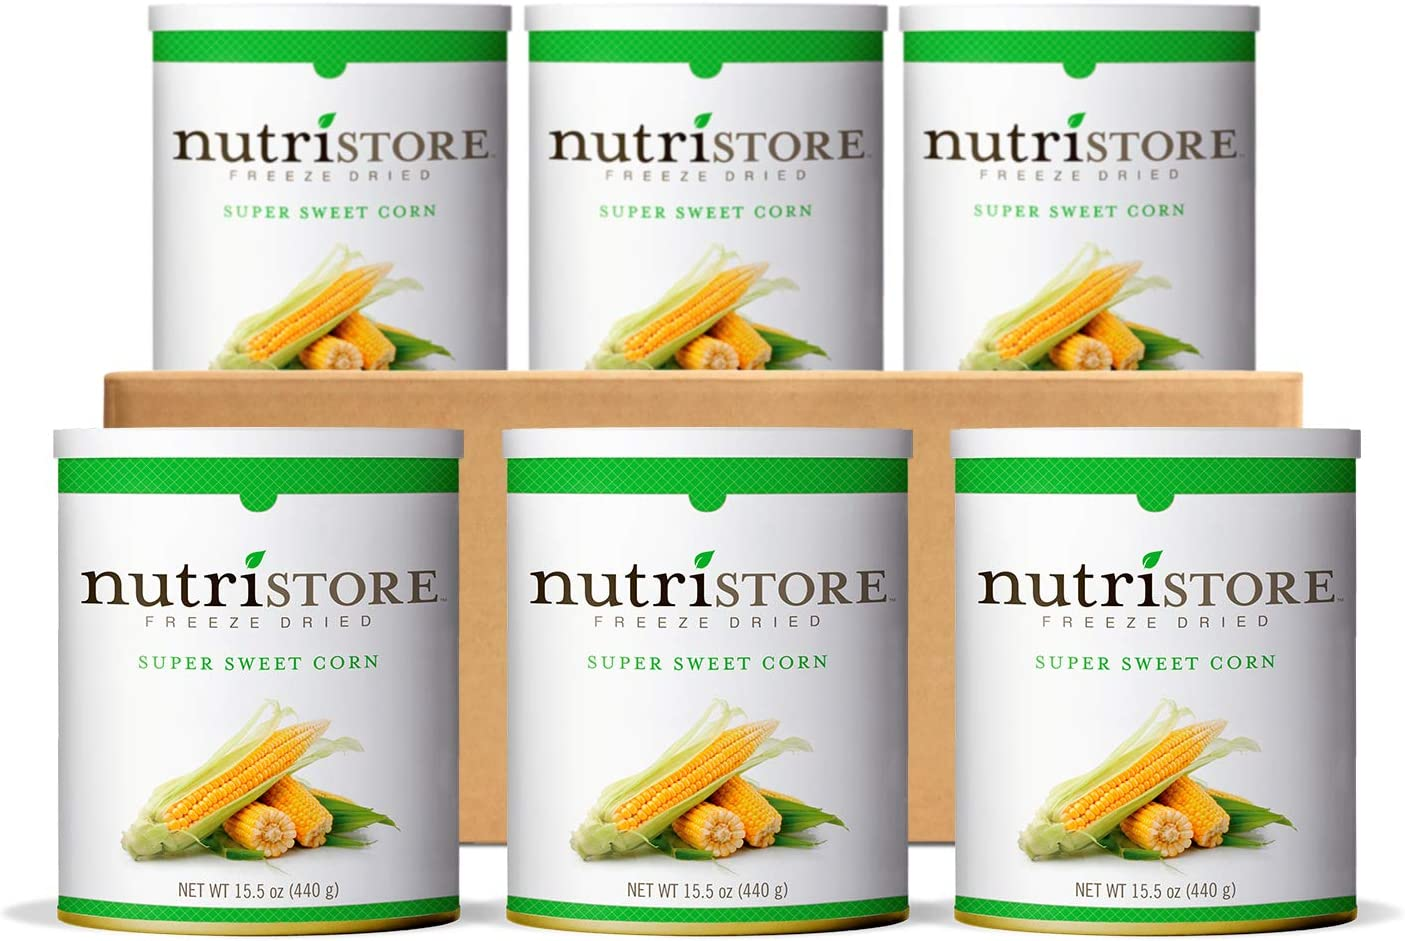 Nutristore Premium Freeze Dried Fruits and Veggies   Healthy Snacks   Great Tasting   Perfect for Camping, Emergency, Survival or Everyday Food Supply   Case Packs   Made in USA